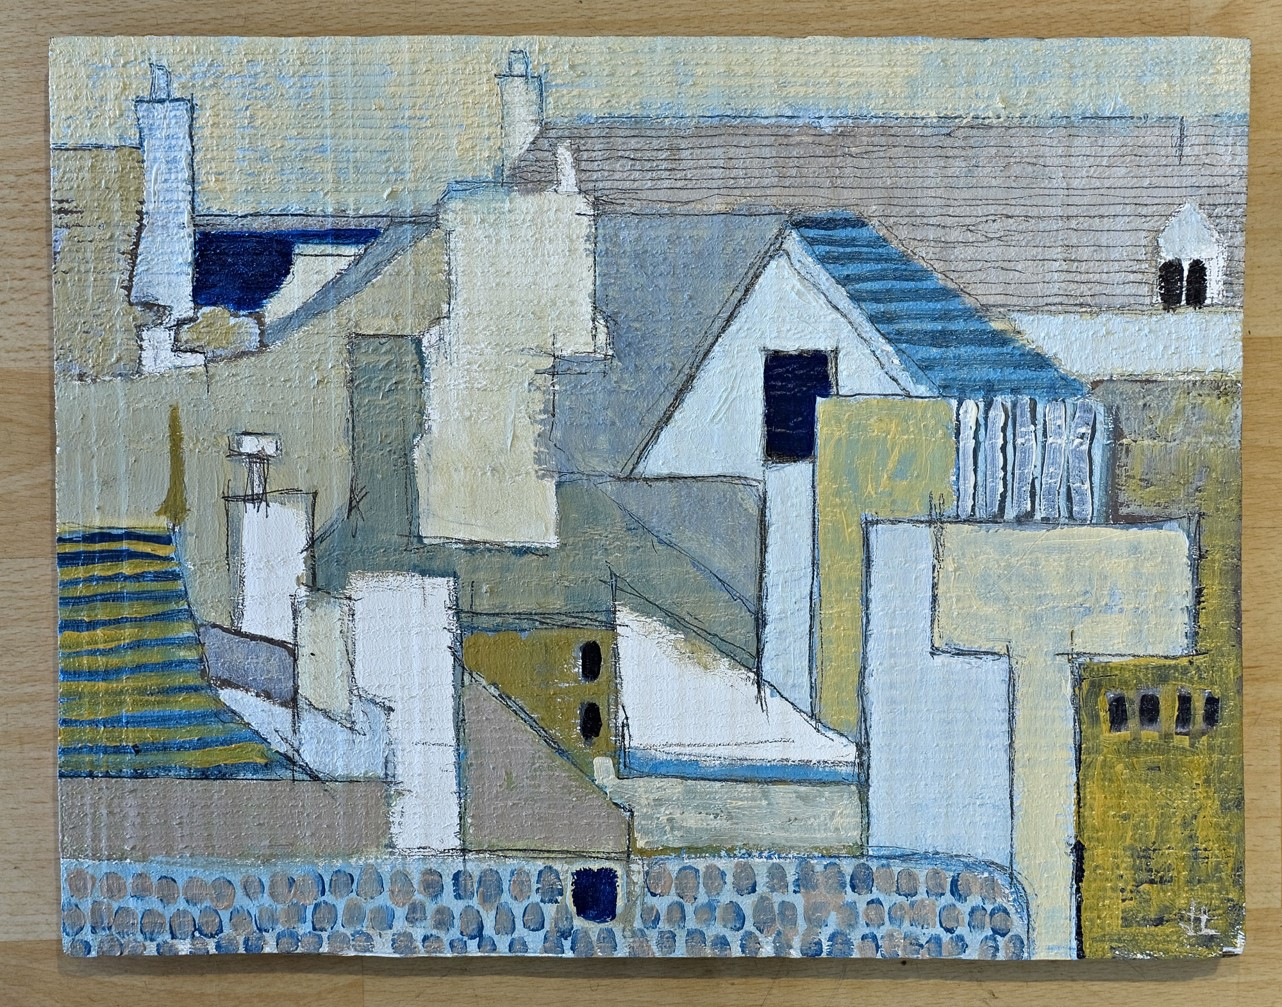 Lot 3 - Artist: Jason Lilley Title: No one to see the distress flare (St Ives) Size: 30 x 39 x 2.